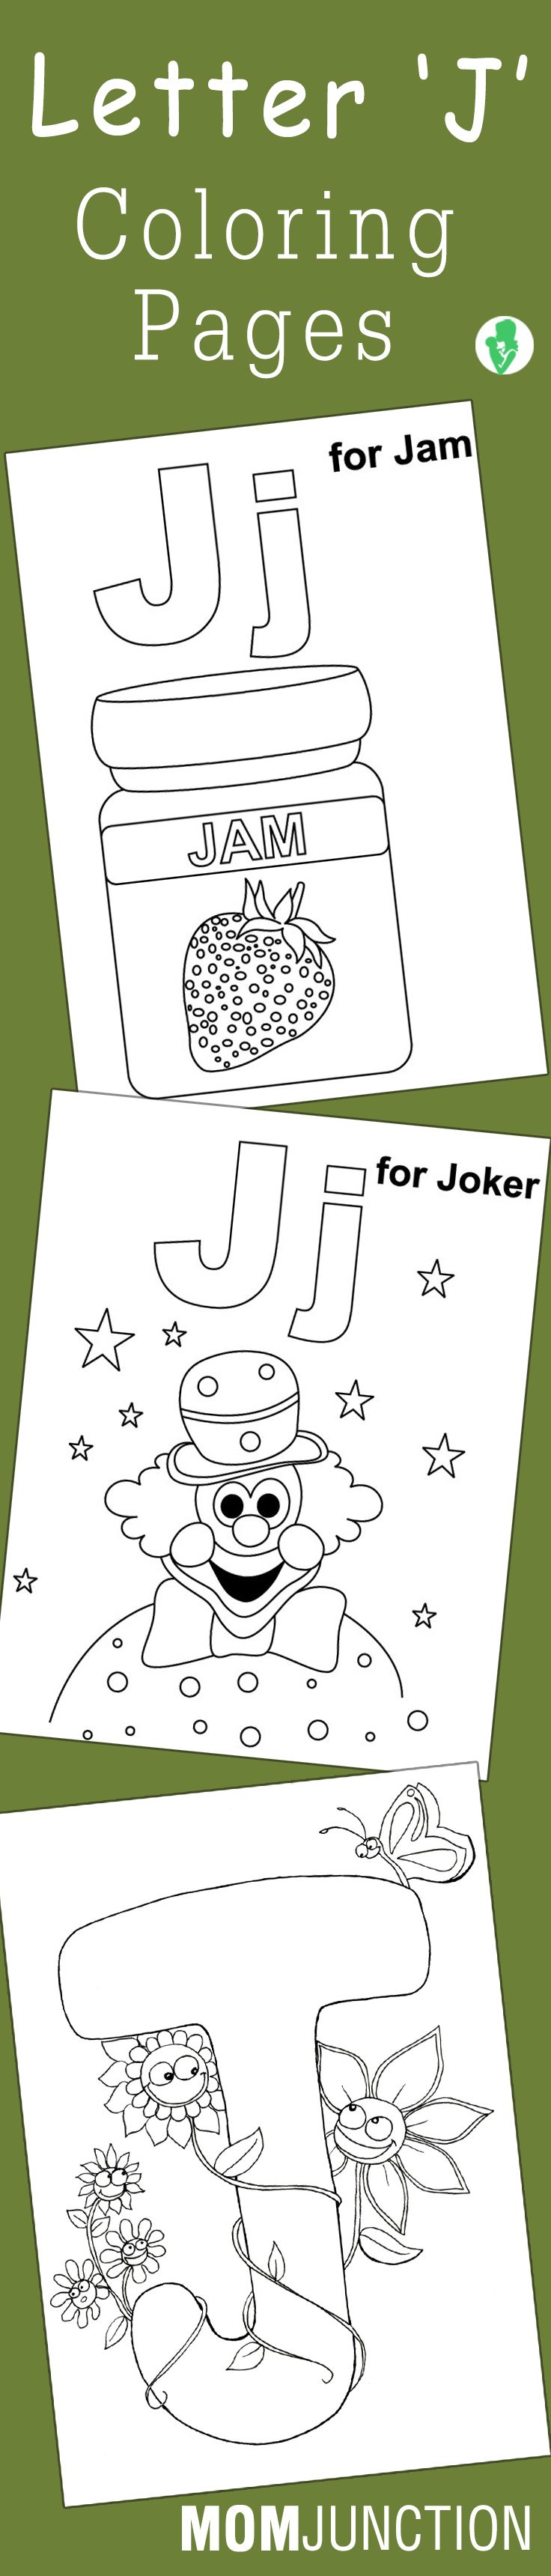 Top 10 Letter 'J' Coloring Pages Your Toddler Will Love To Learn & Color